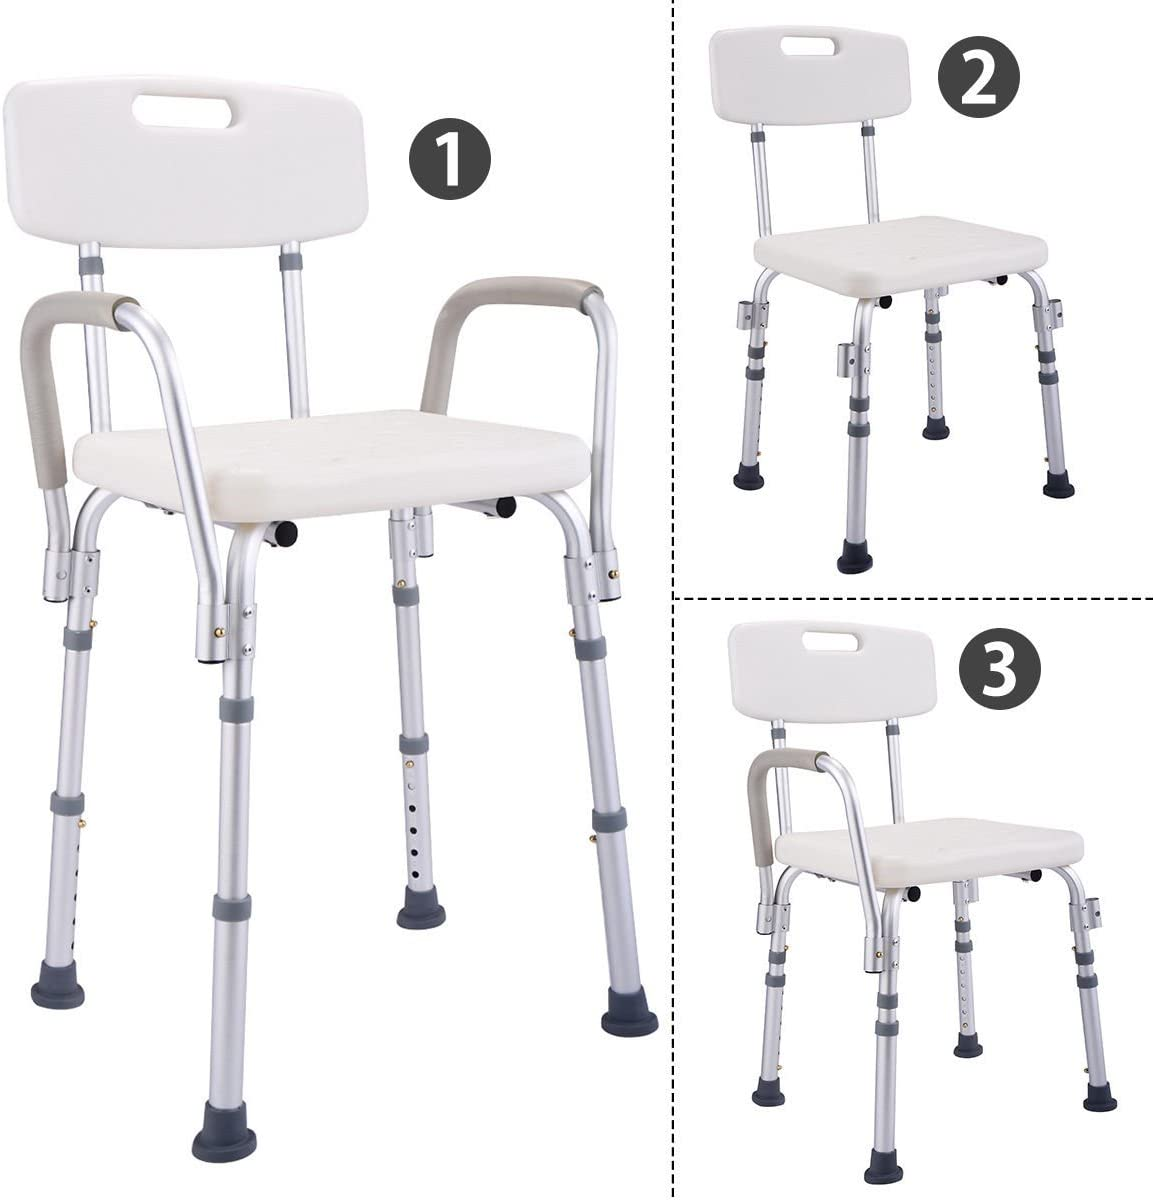 6 Height Adjustable Medical Shower Chair Stool Bath Tub w/ Back & Armrest New 61yBnwVDvaLSL1200_